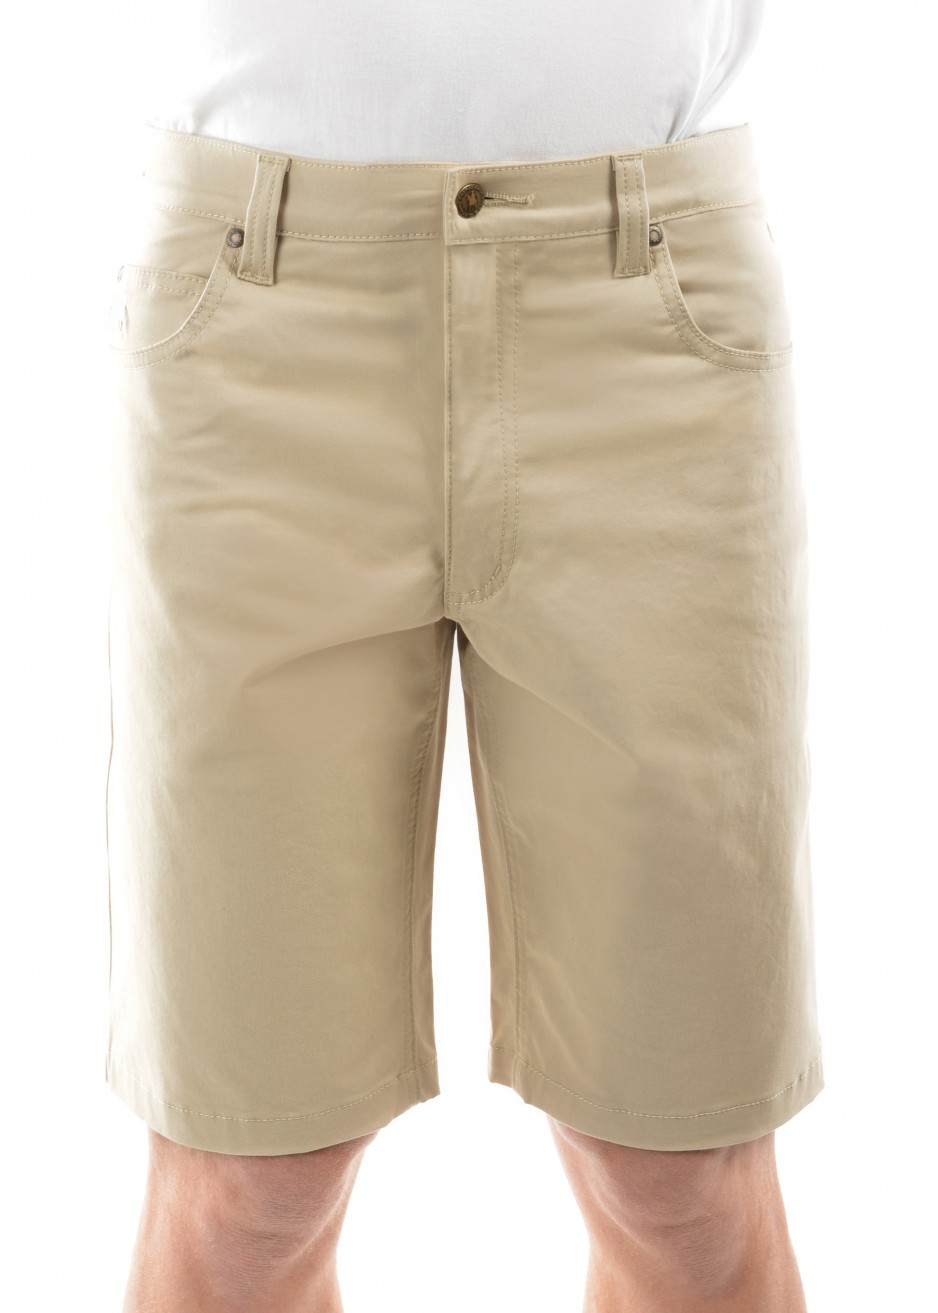 MENS JAKE COMFORT WAIST SHORTS